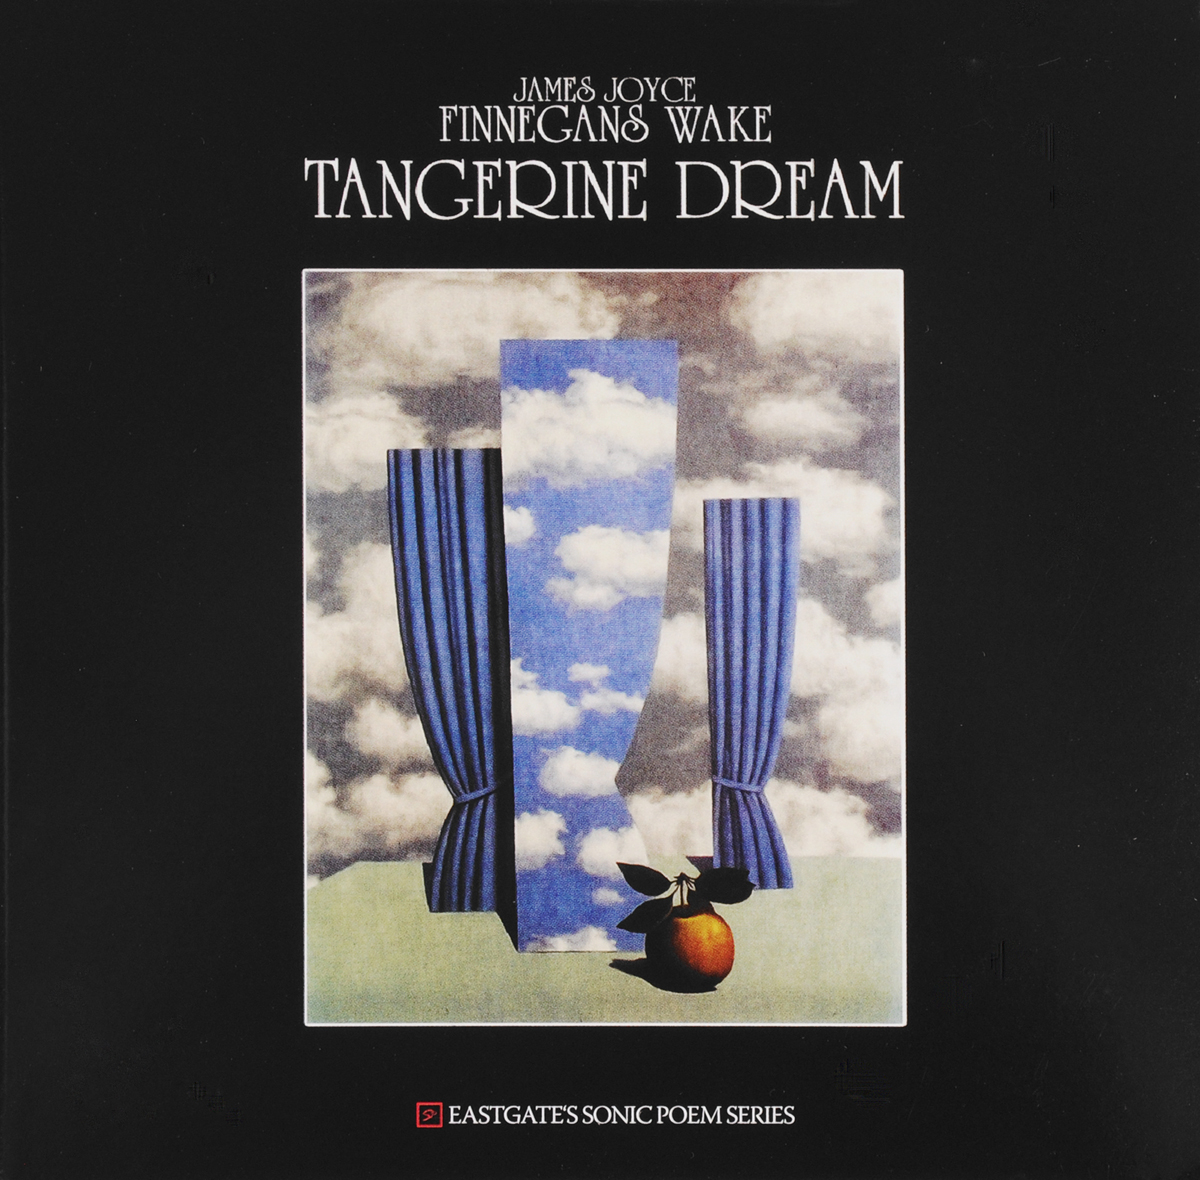 Tangerine Dream Tangerine Dream. Finnegans Wake джеймс джойс finnegans wake